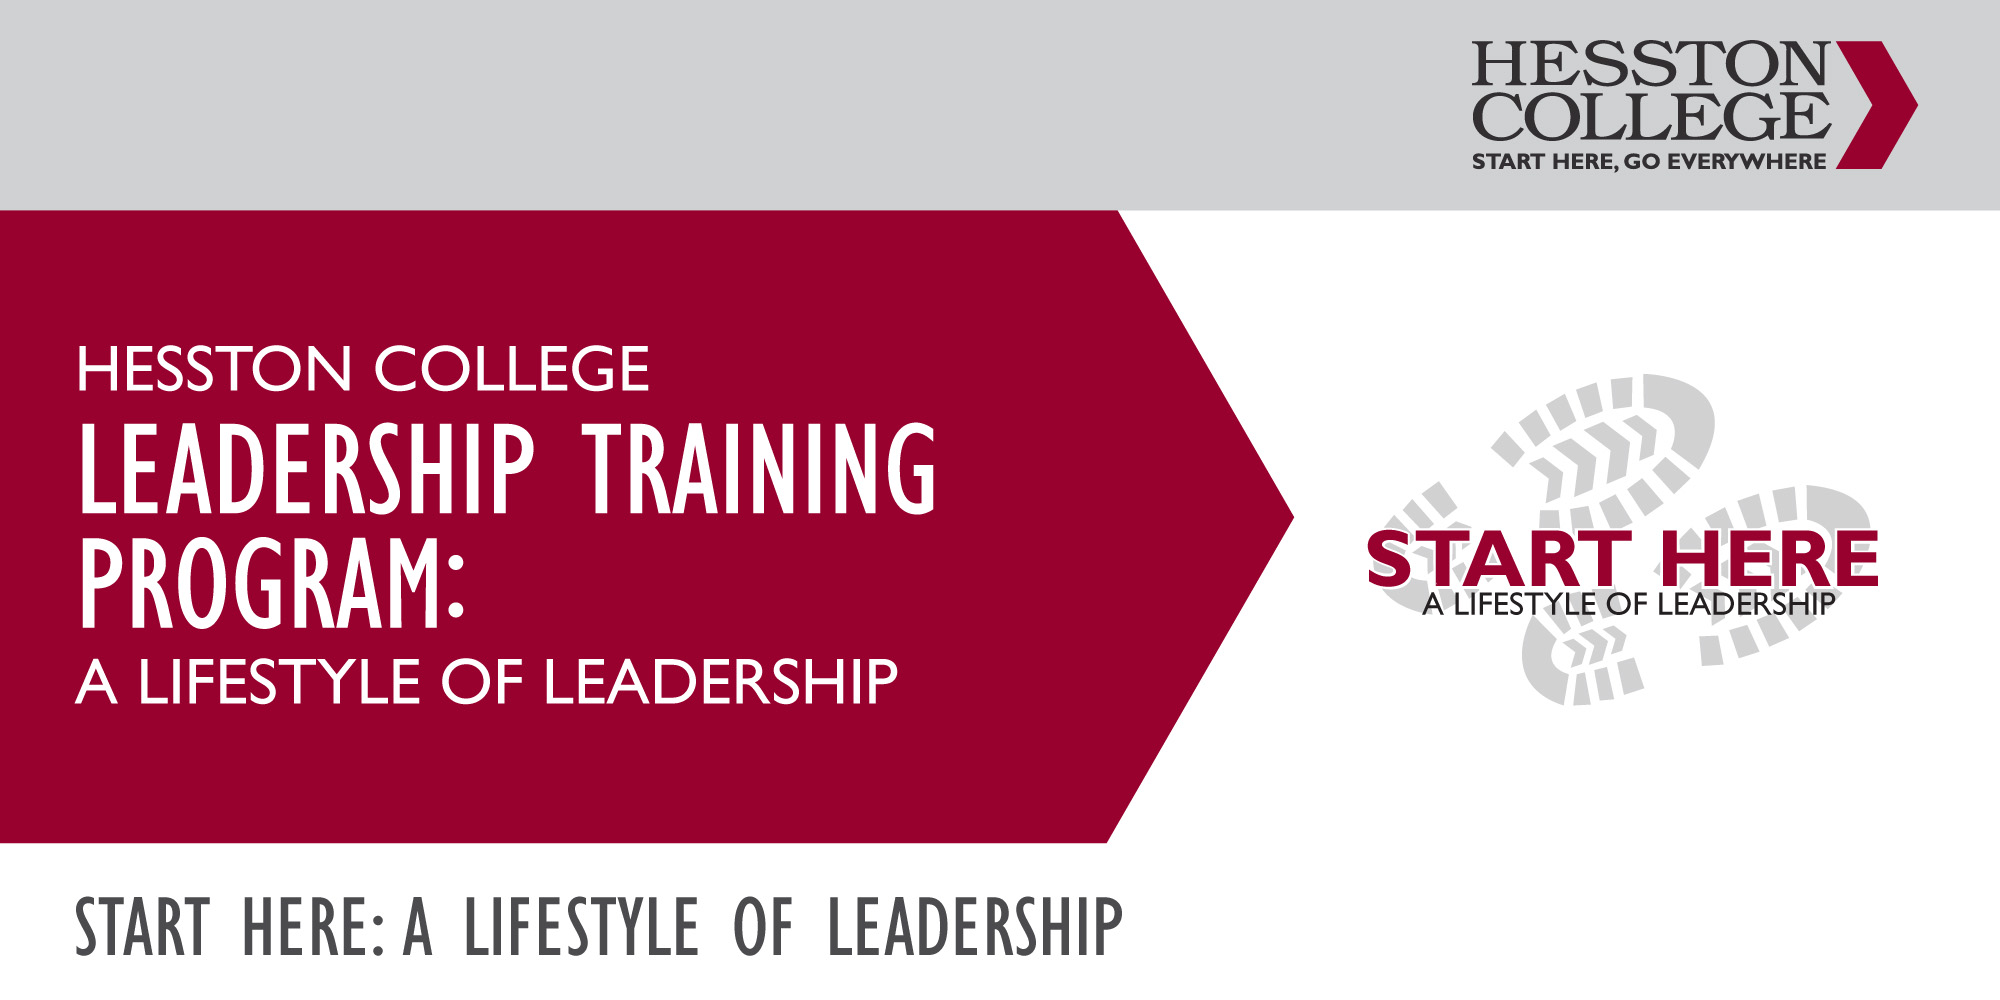 Hesston College Leadership Training Program